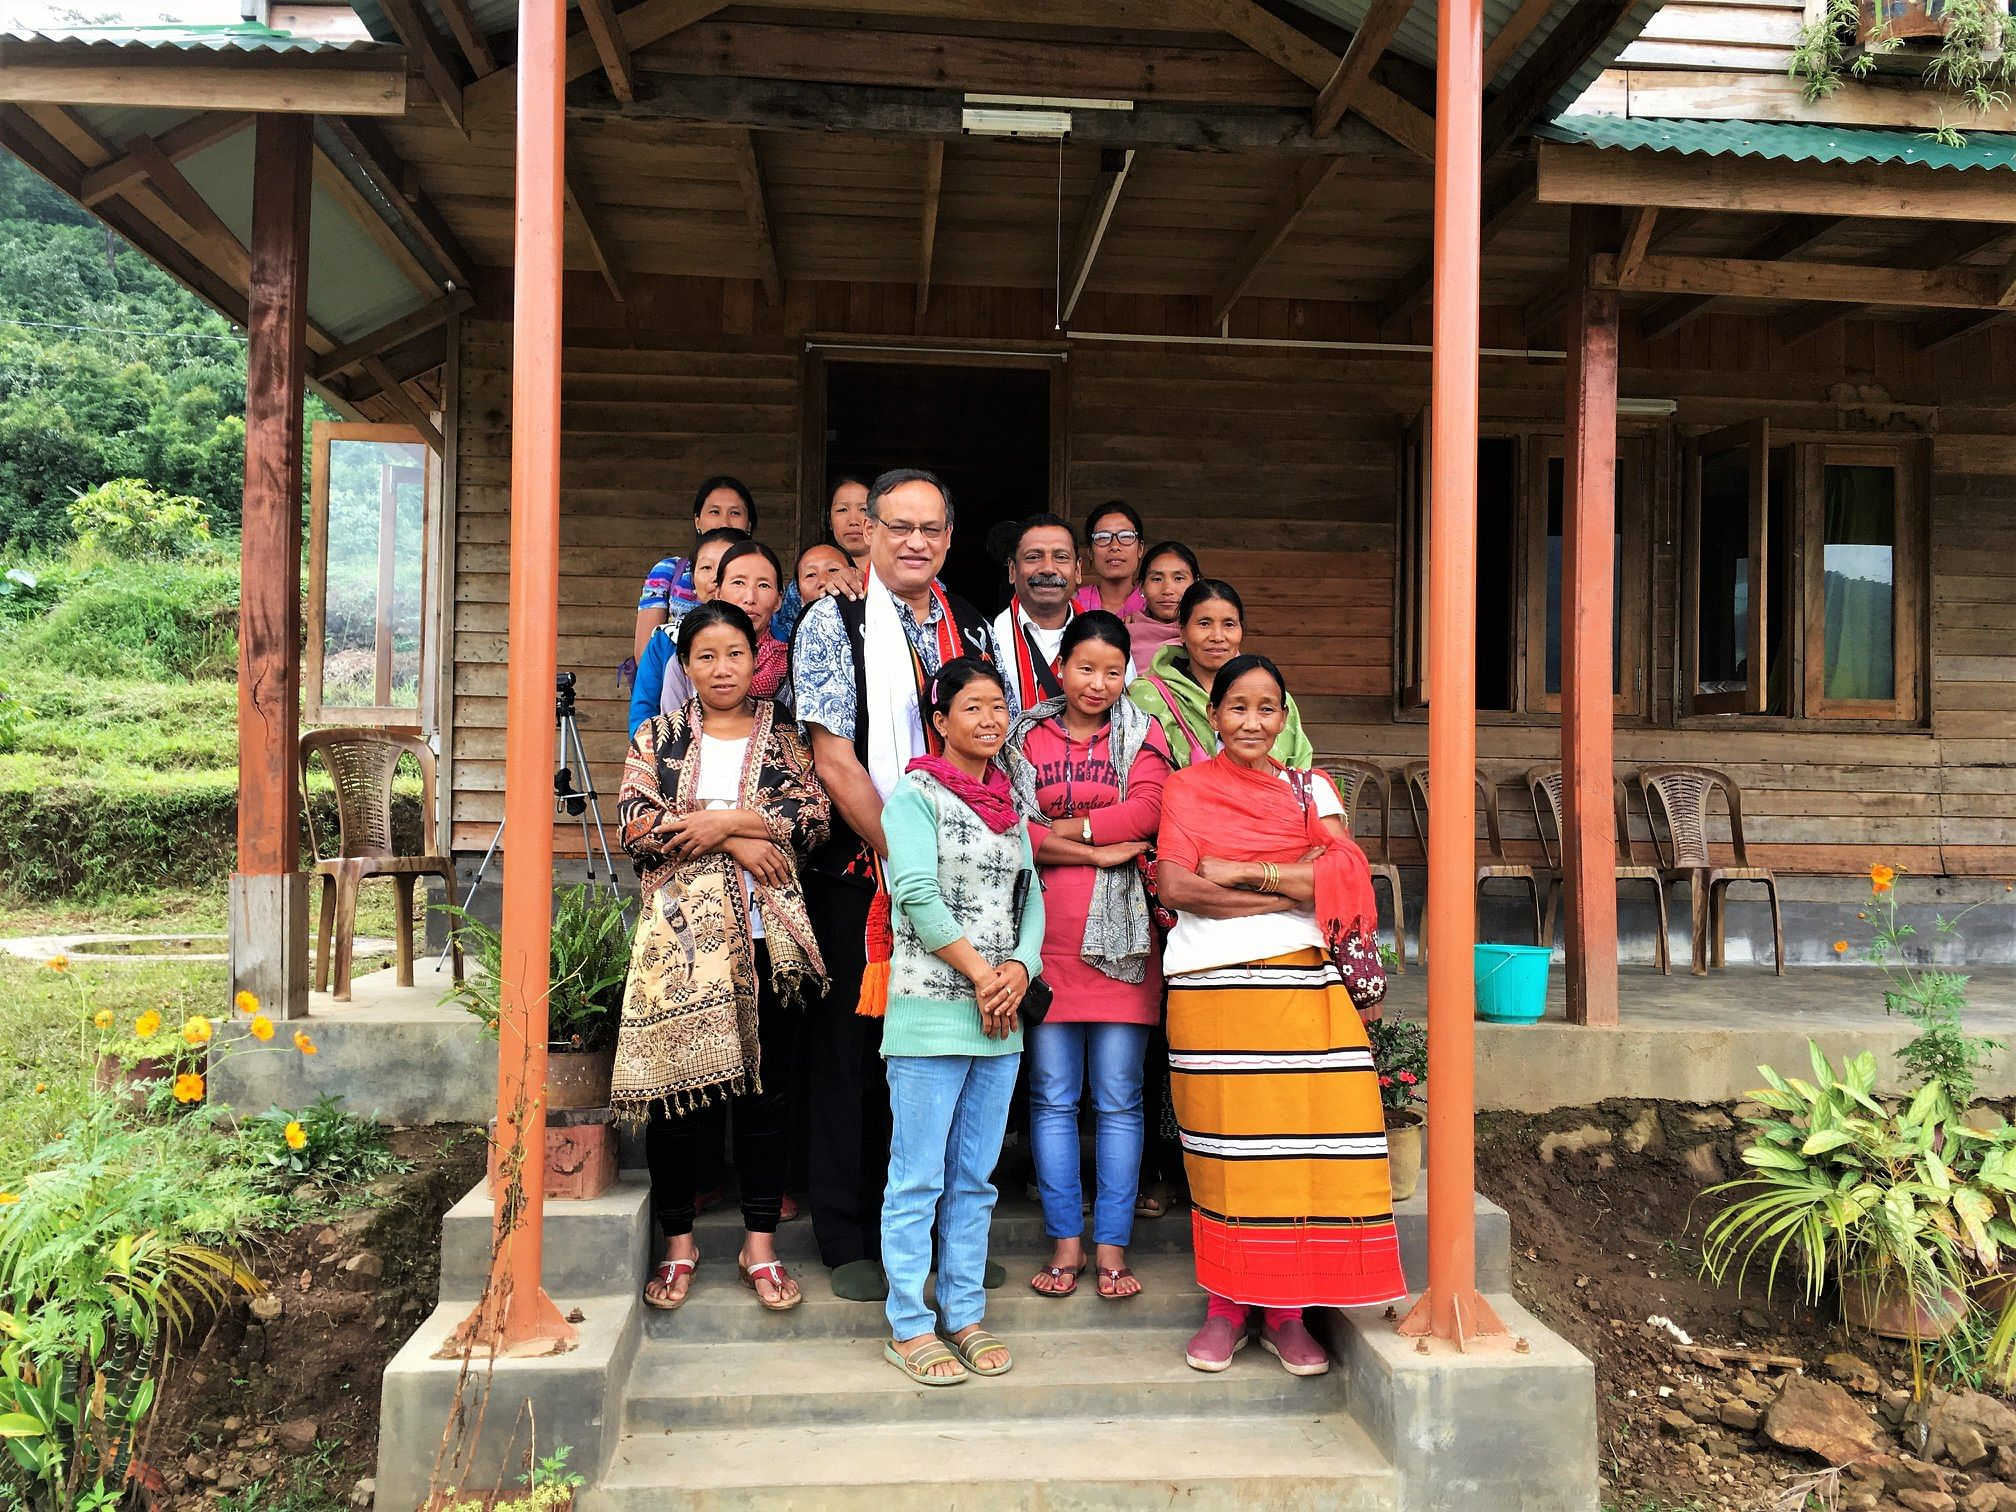 Colonel Rego standing with Women's Self Help Groups at the Sunbird Centre. (Source: Facebook)